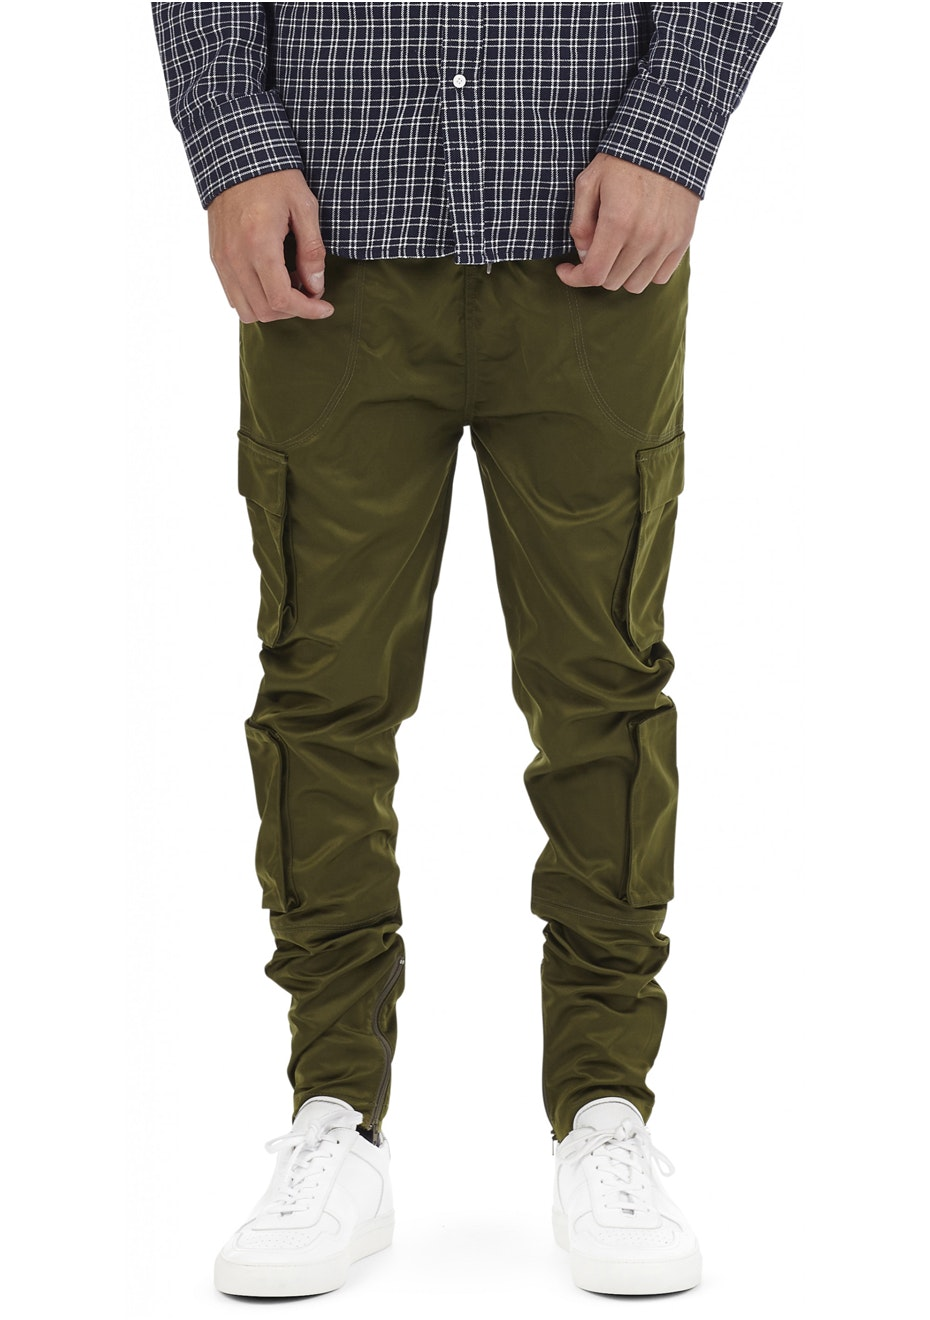 I Love Ugly - Zespy Militia Pant - Forest Green